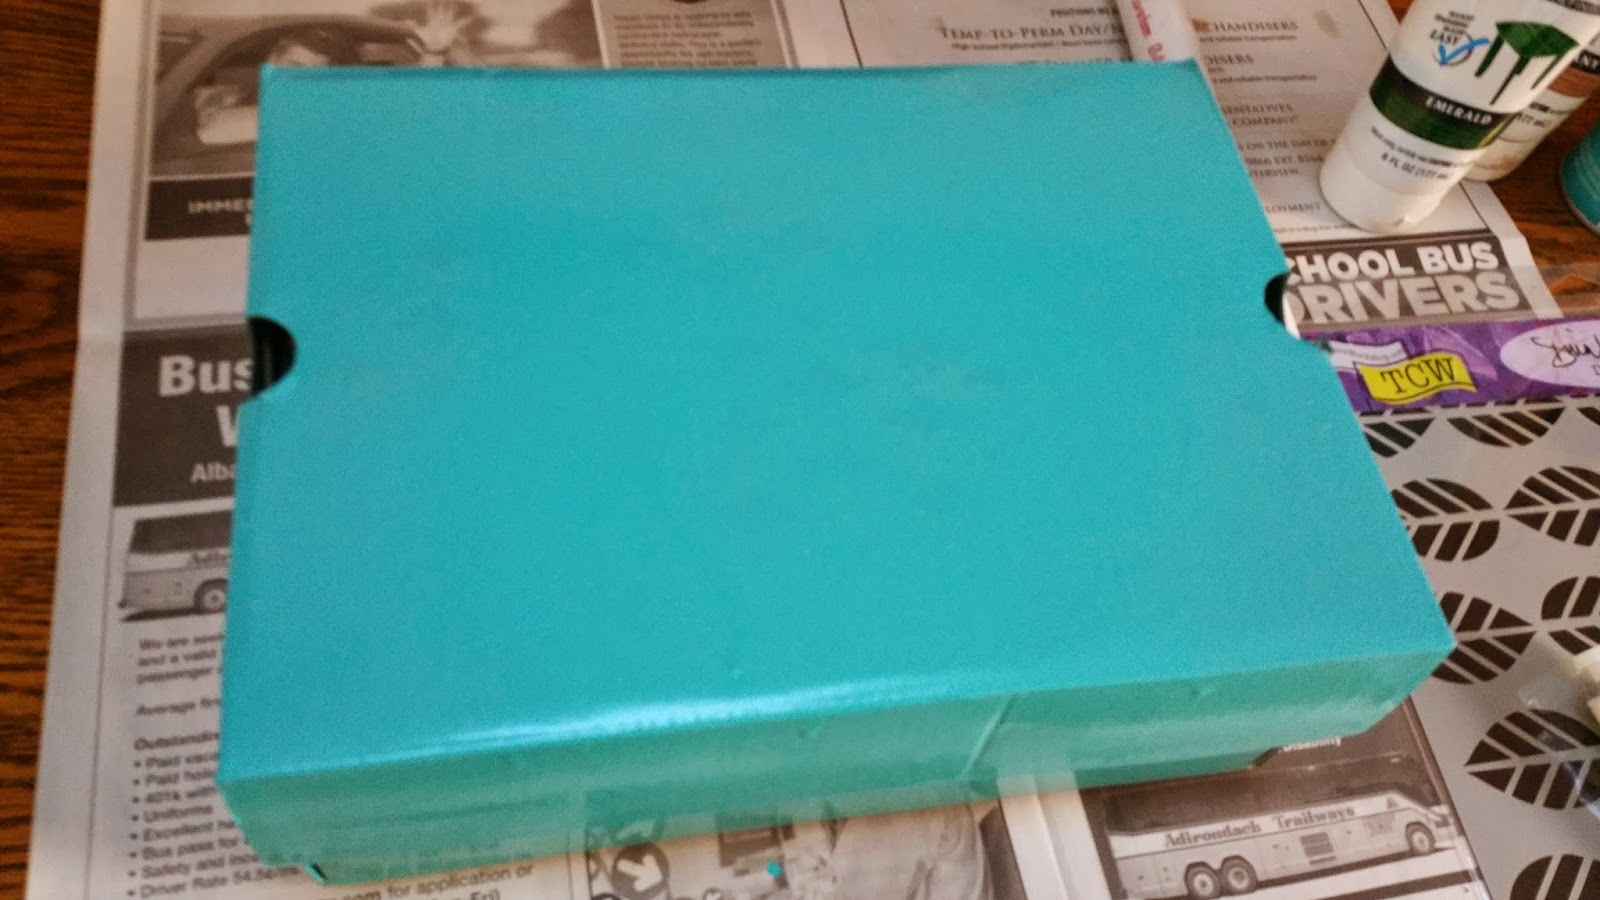 So I Spray Painted The Box In This Bright Turquoise Color.